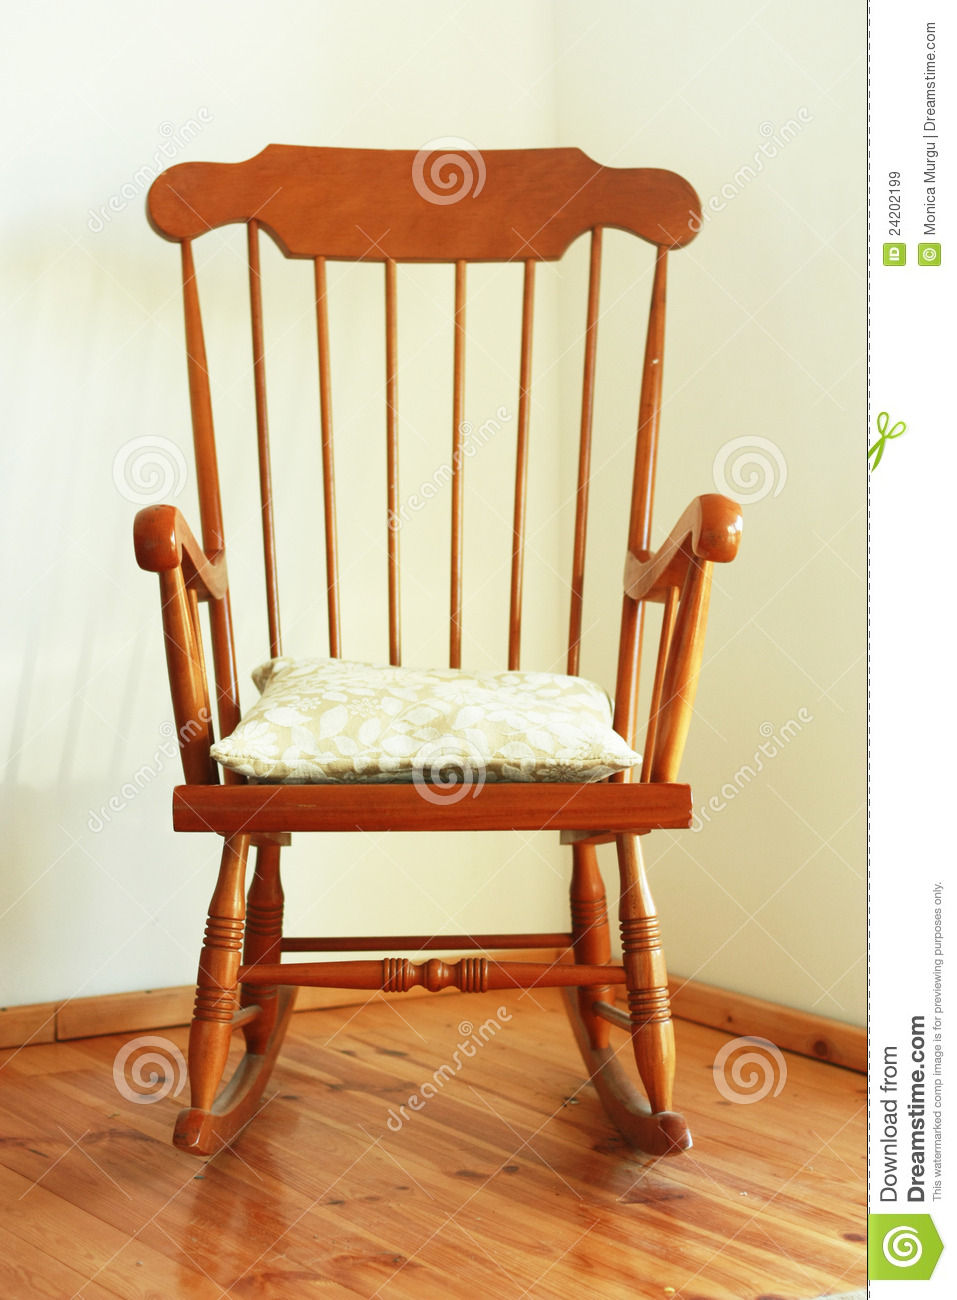 Swing Chair Royalty Free Stock Images - Image: 24202199